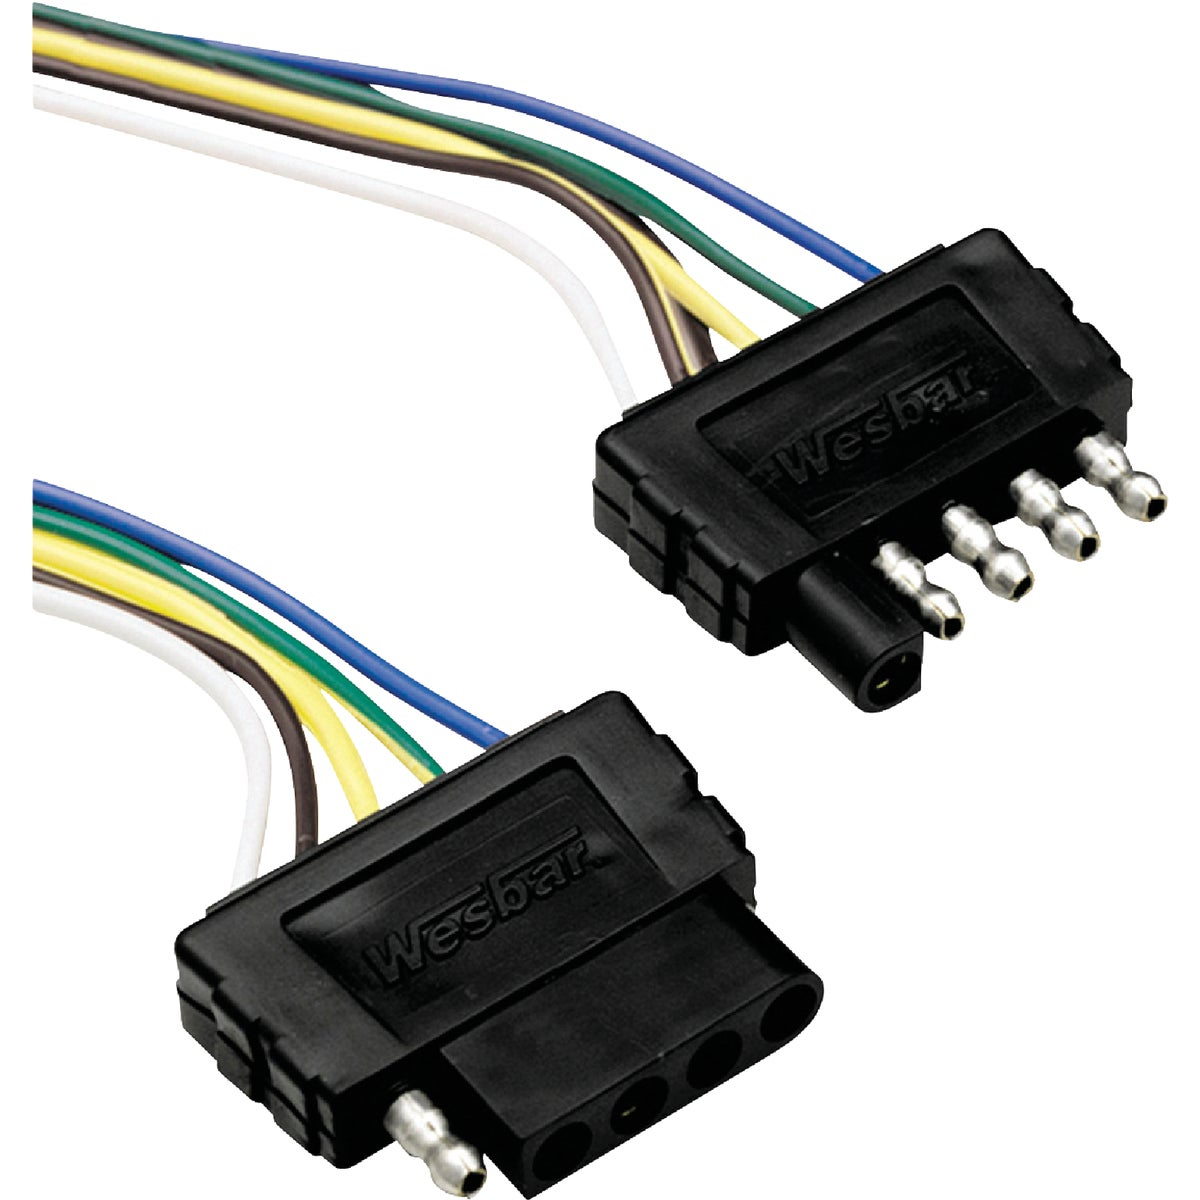 Vehicle-Trailer Wiring Set